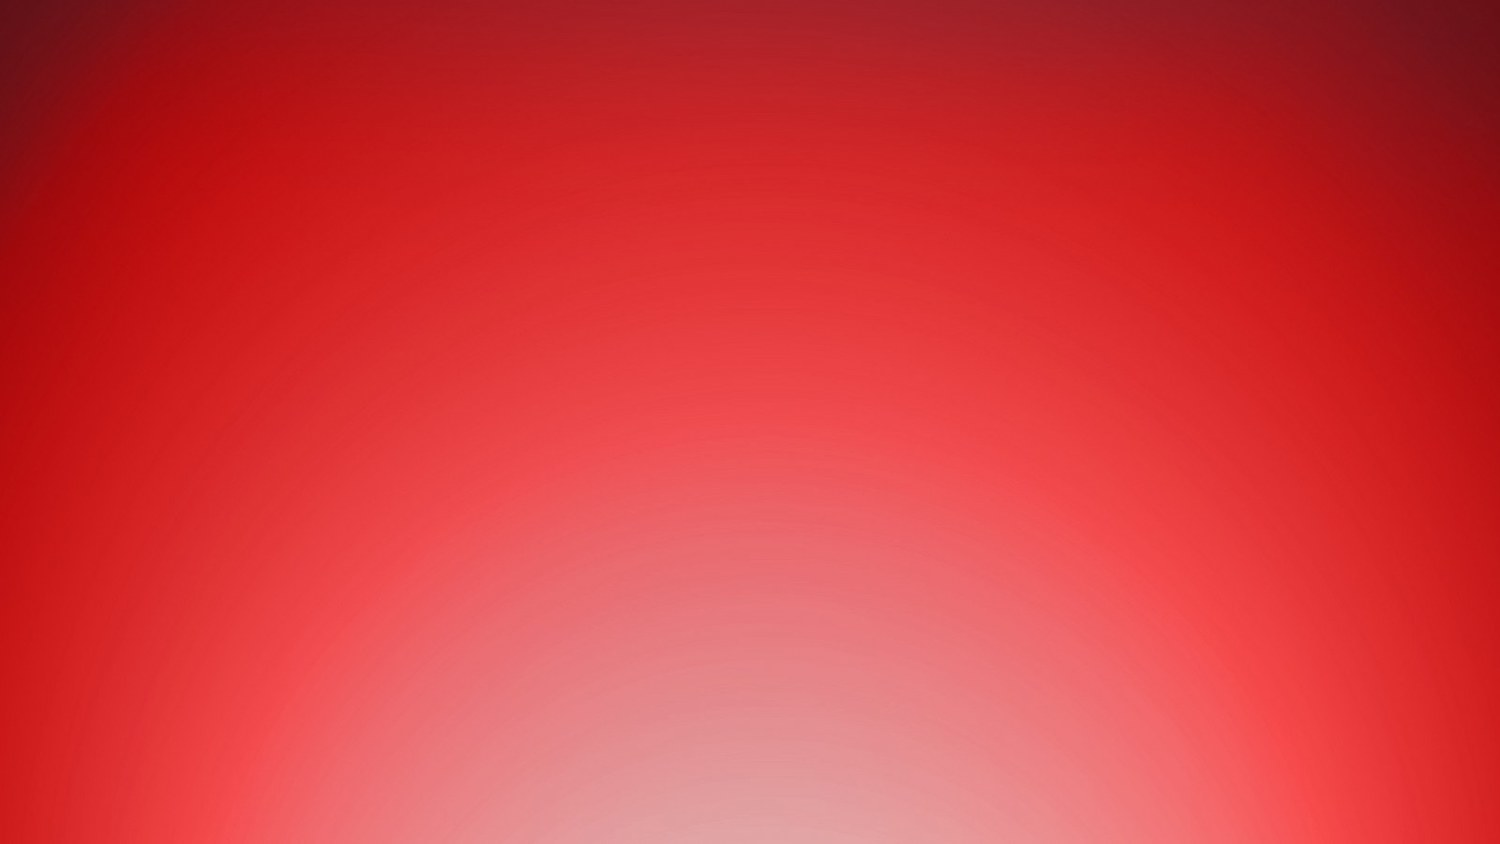 Red Background Wallpaper Texture   CPR Society 1500x844